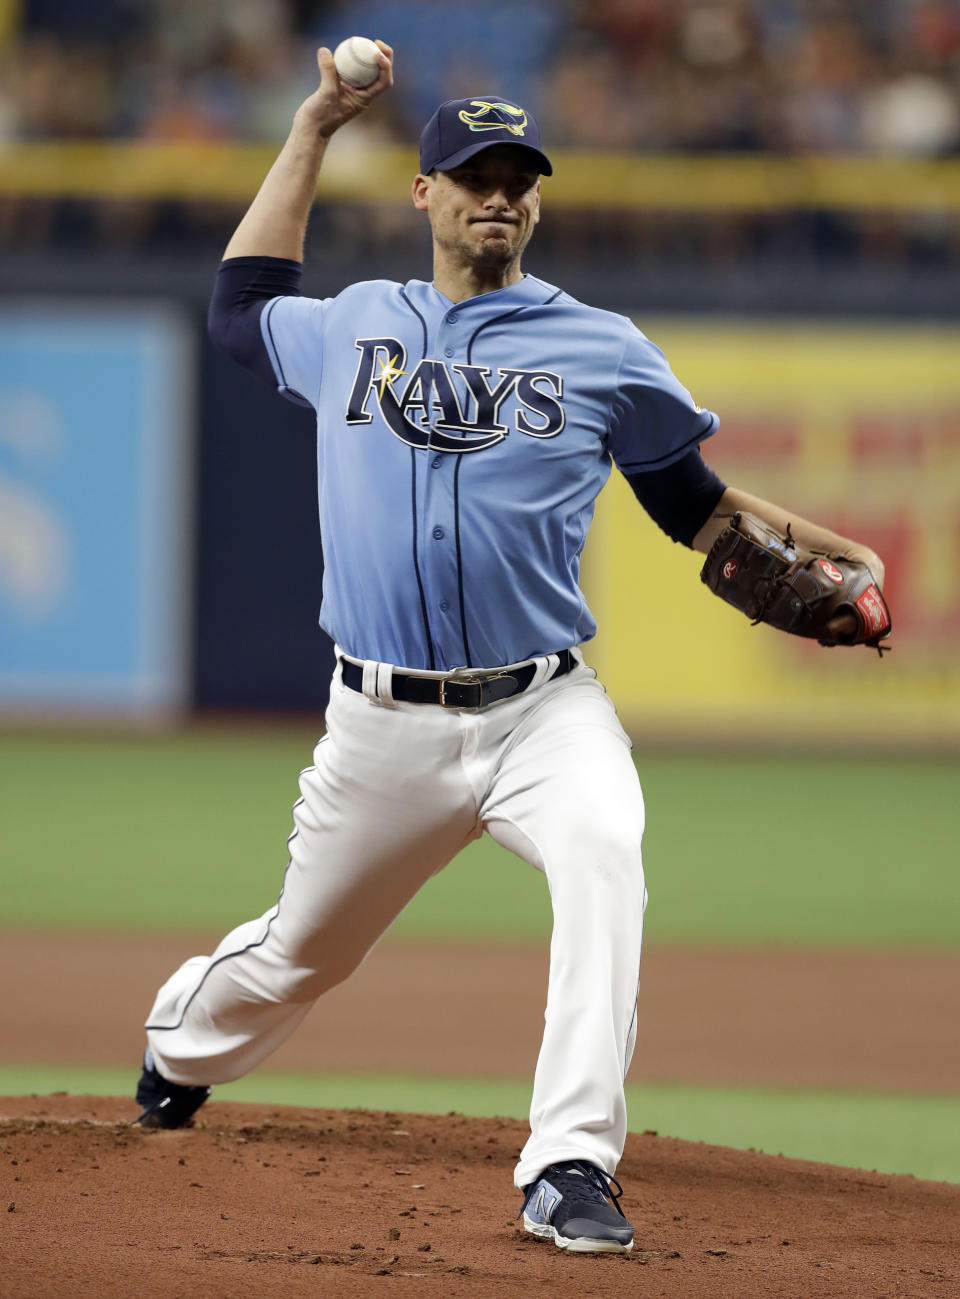 Tampa Bay Rays' Charlie Morton pitches to the Cleveland Indians during the first inning of a baseball game Sunday, Sept. 1, 2019, in St. Petersburg, Fla. (AP Photo/Chris O'Meara)